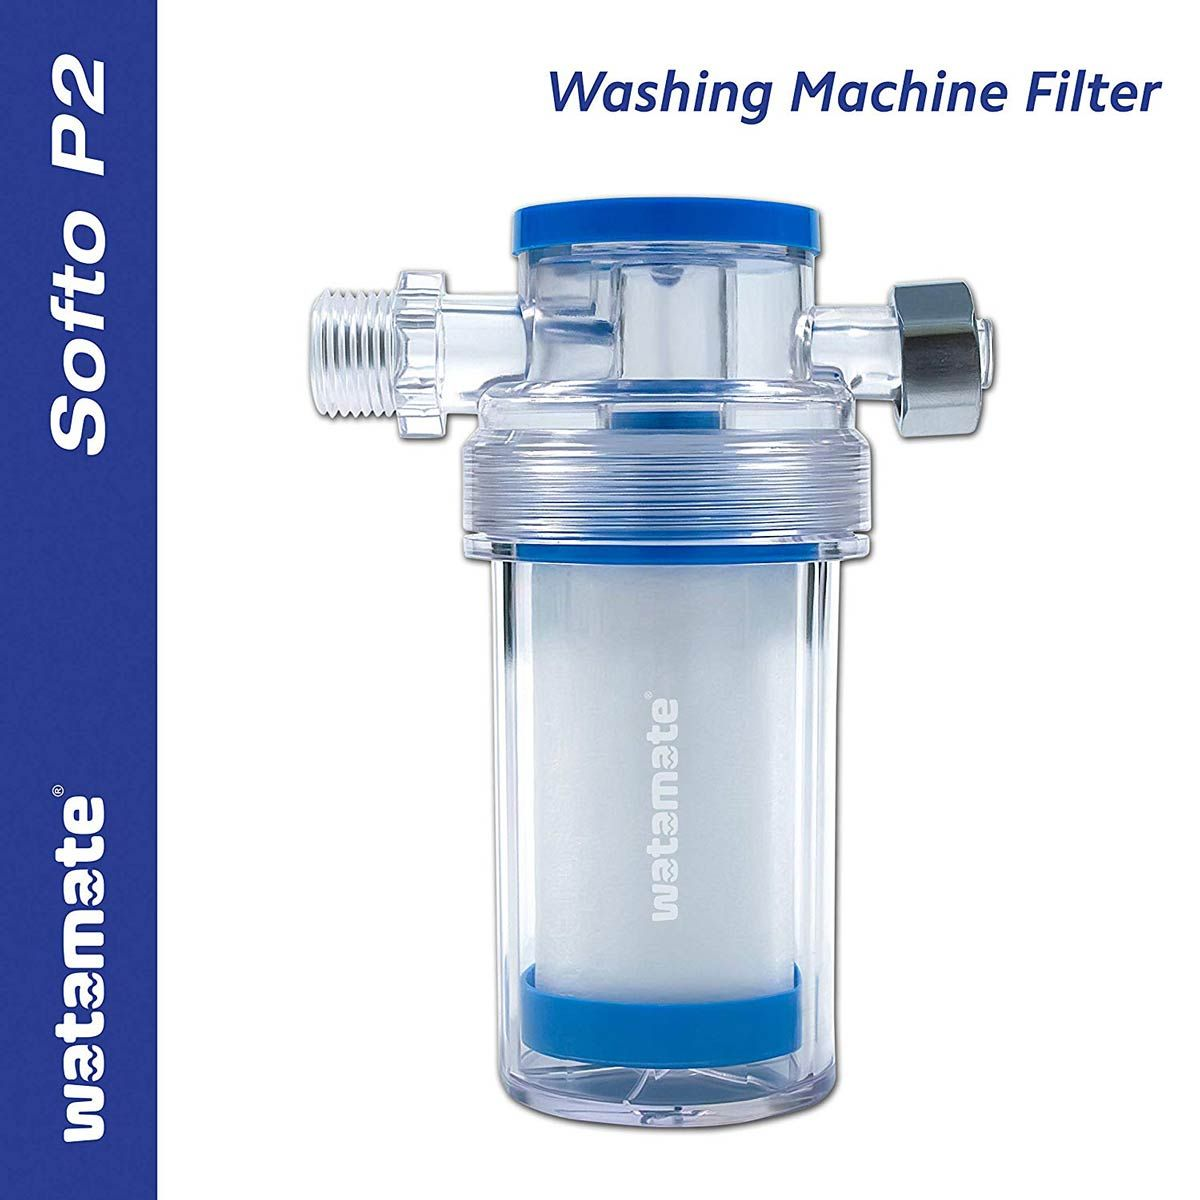 buy affordable watamate softo p2 washing machine filter for hard water online